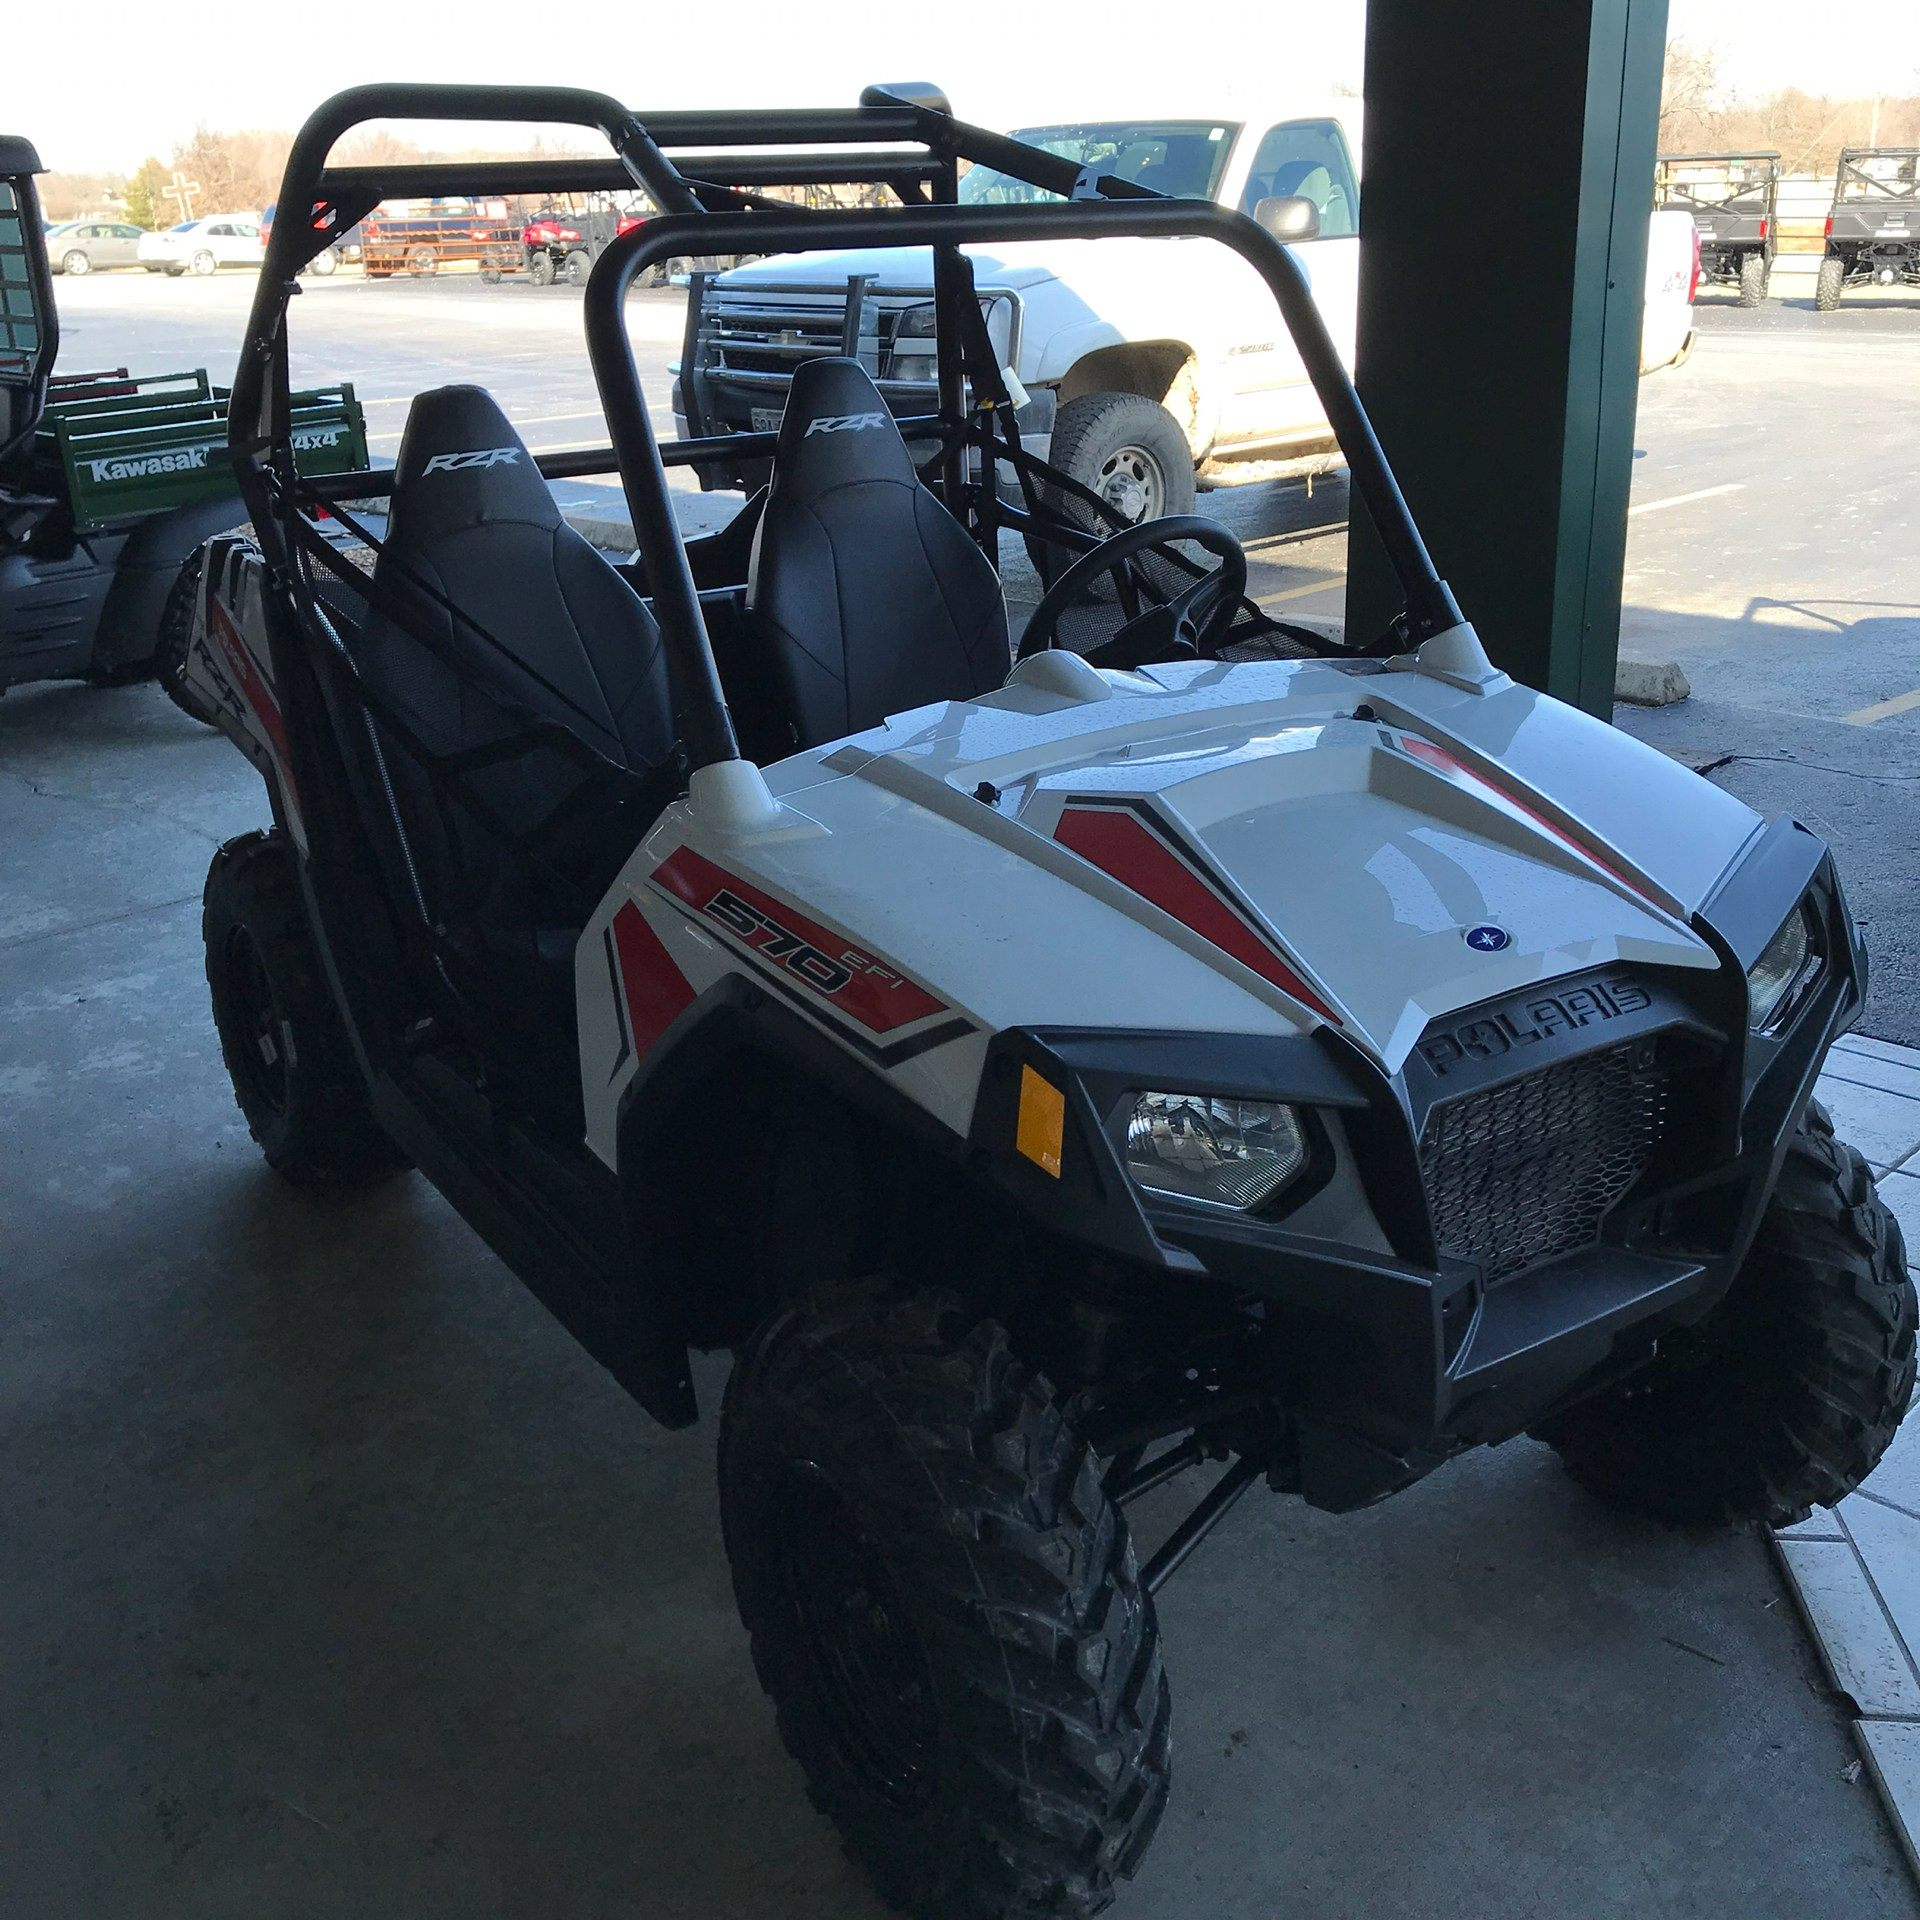 2019 Polaris RZR 570 for sale 76619